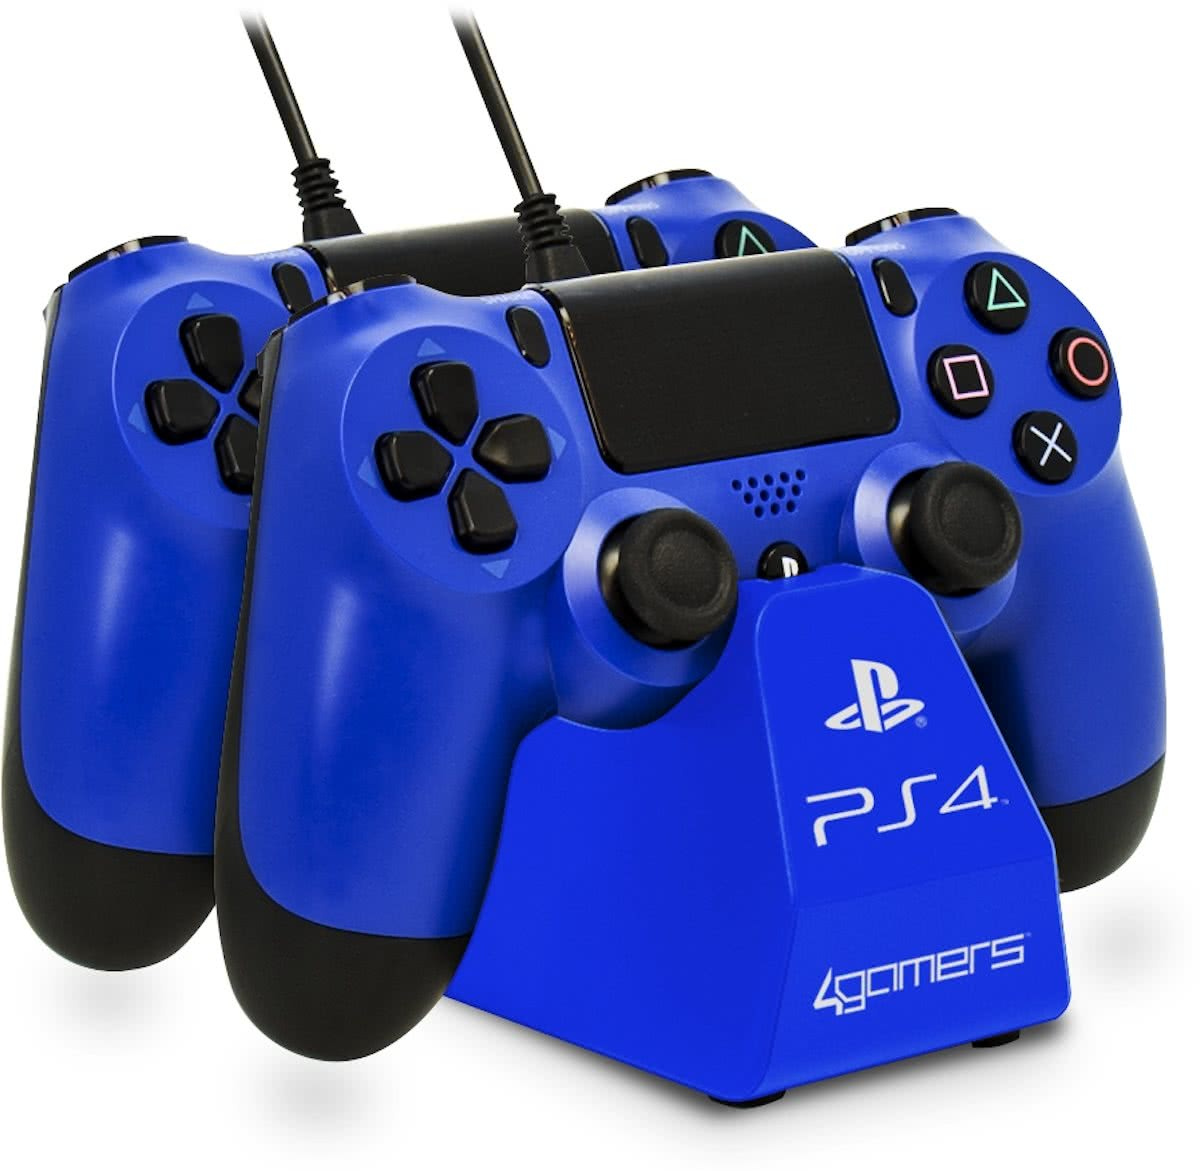 4G-4182 - Twin Play n - Oplaadstation - Blauw - PS4